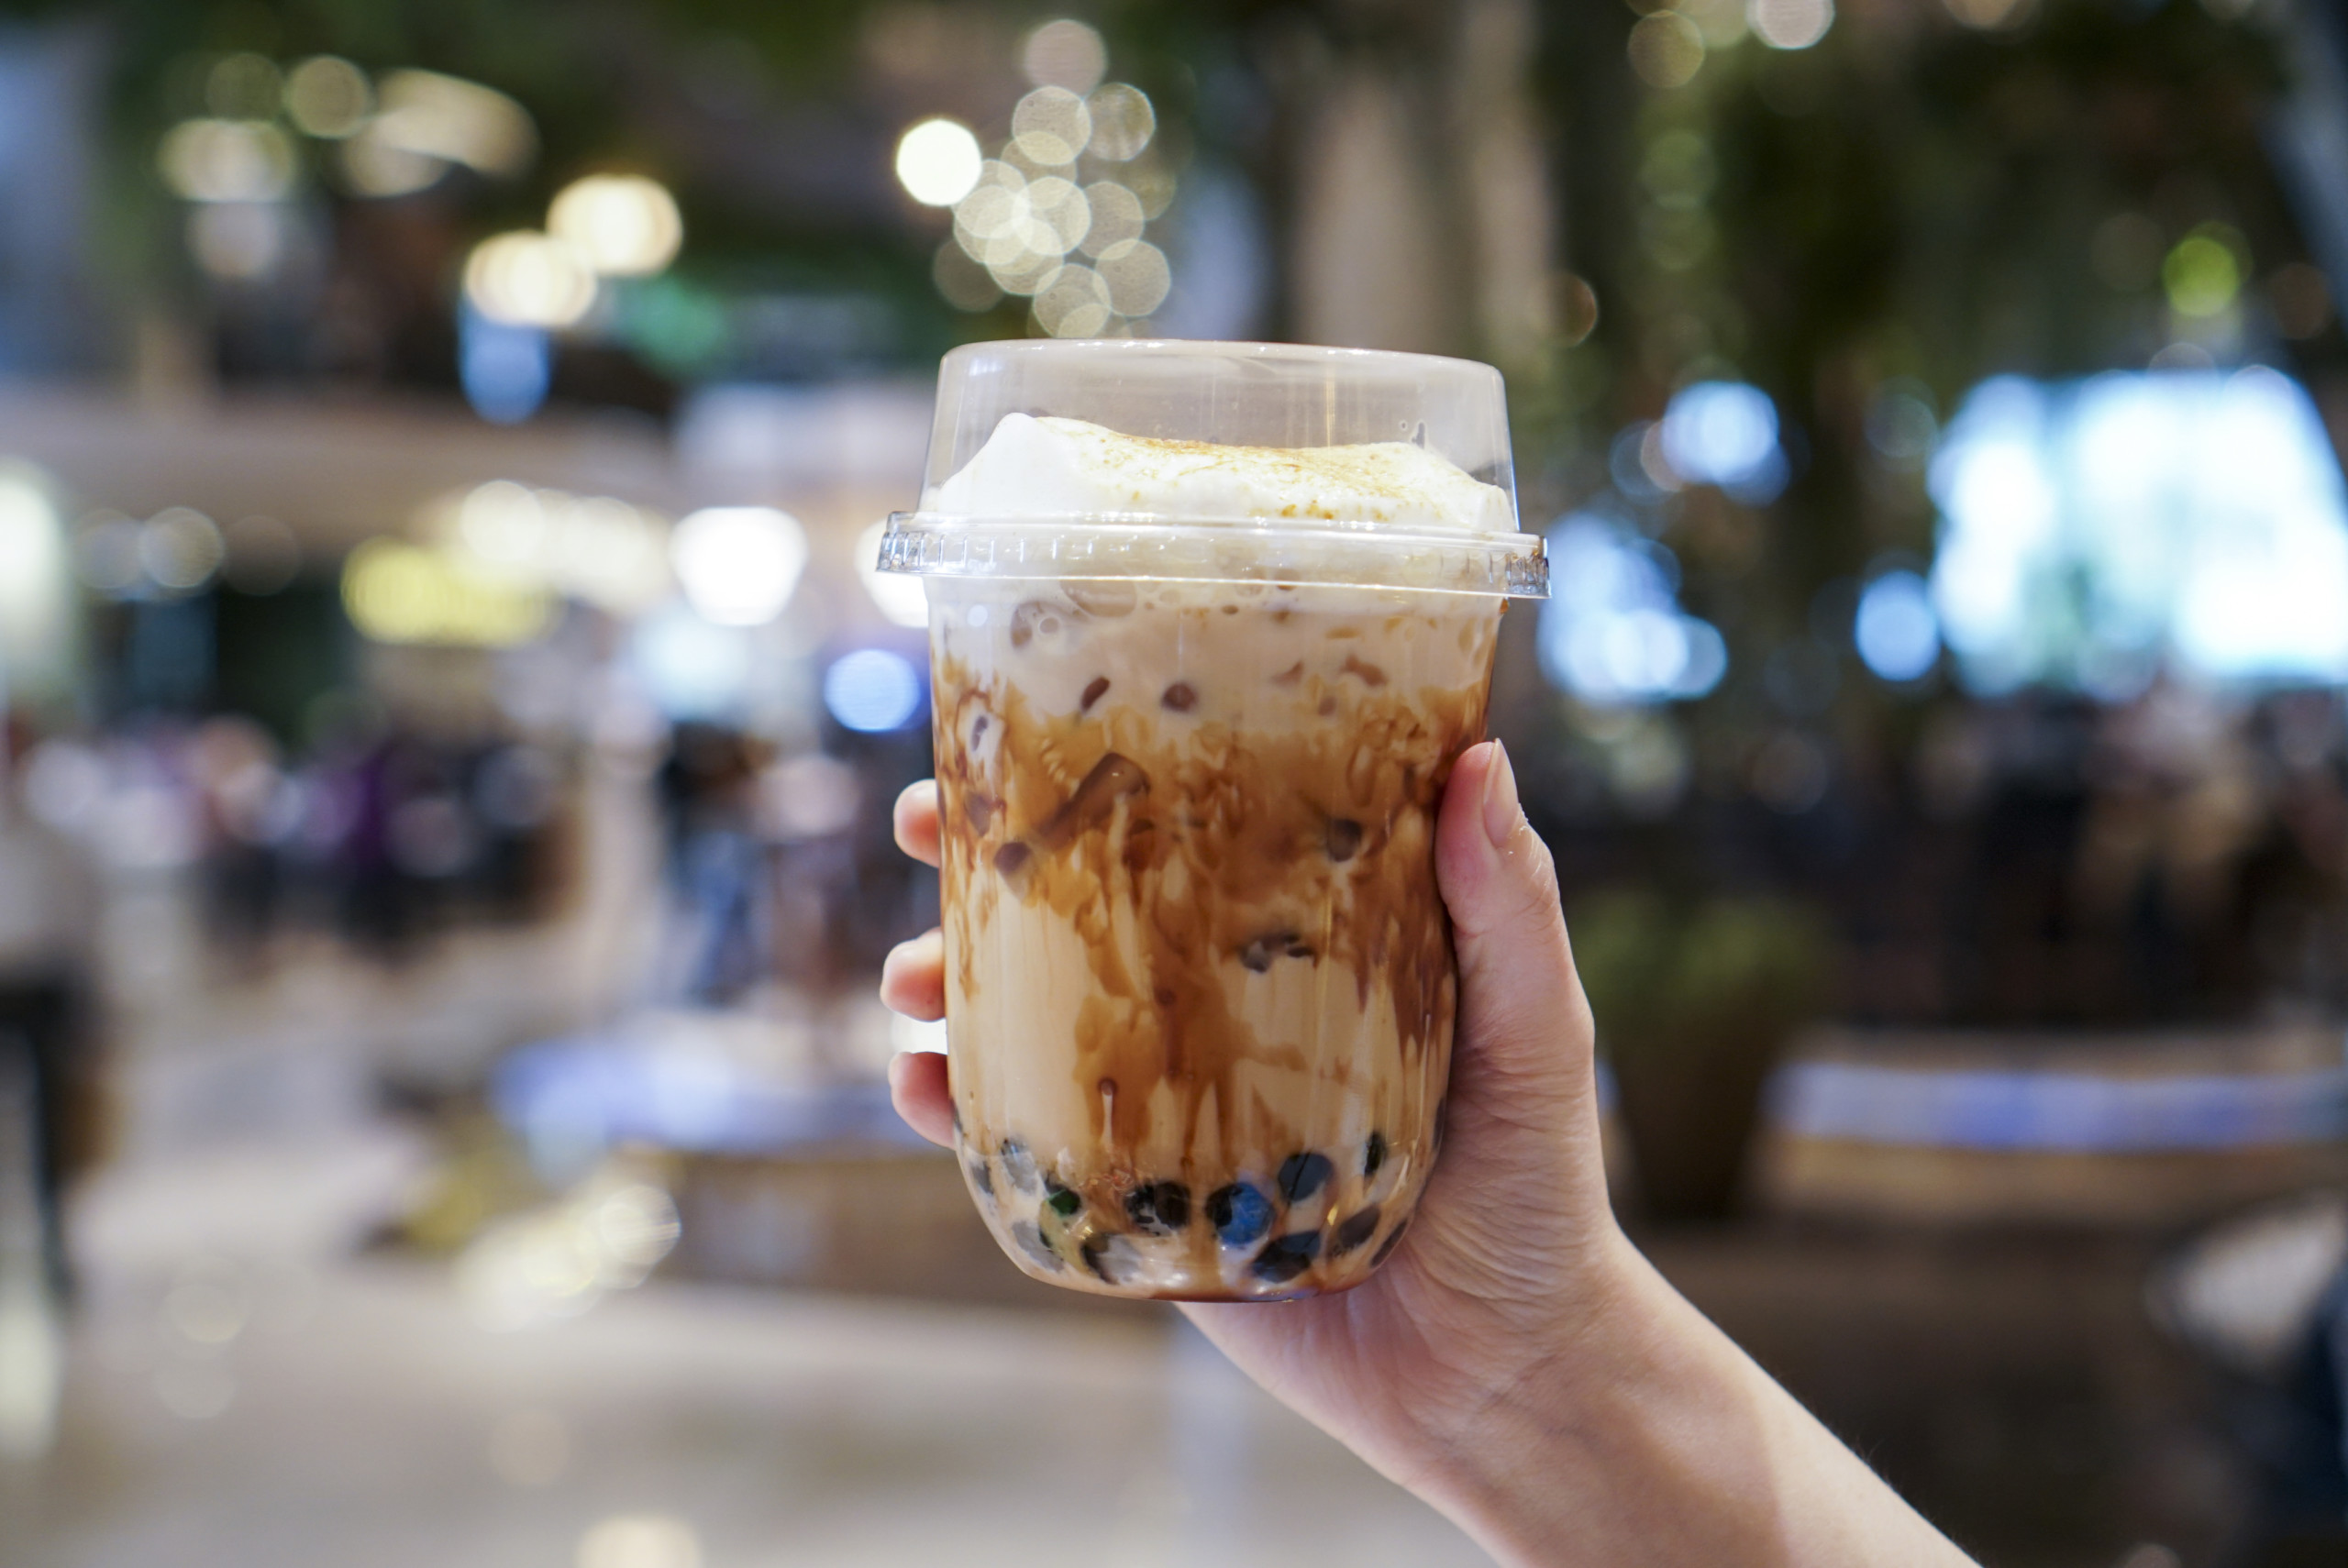 Man holding a plastic cup of bubble/boba milk tea with brown sugar and topped with milk foam.